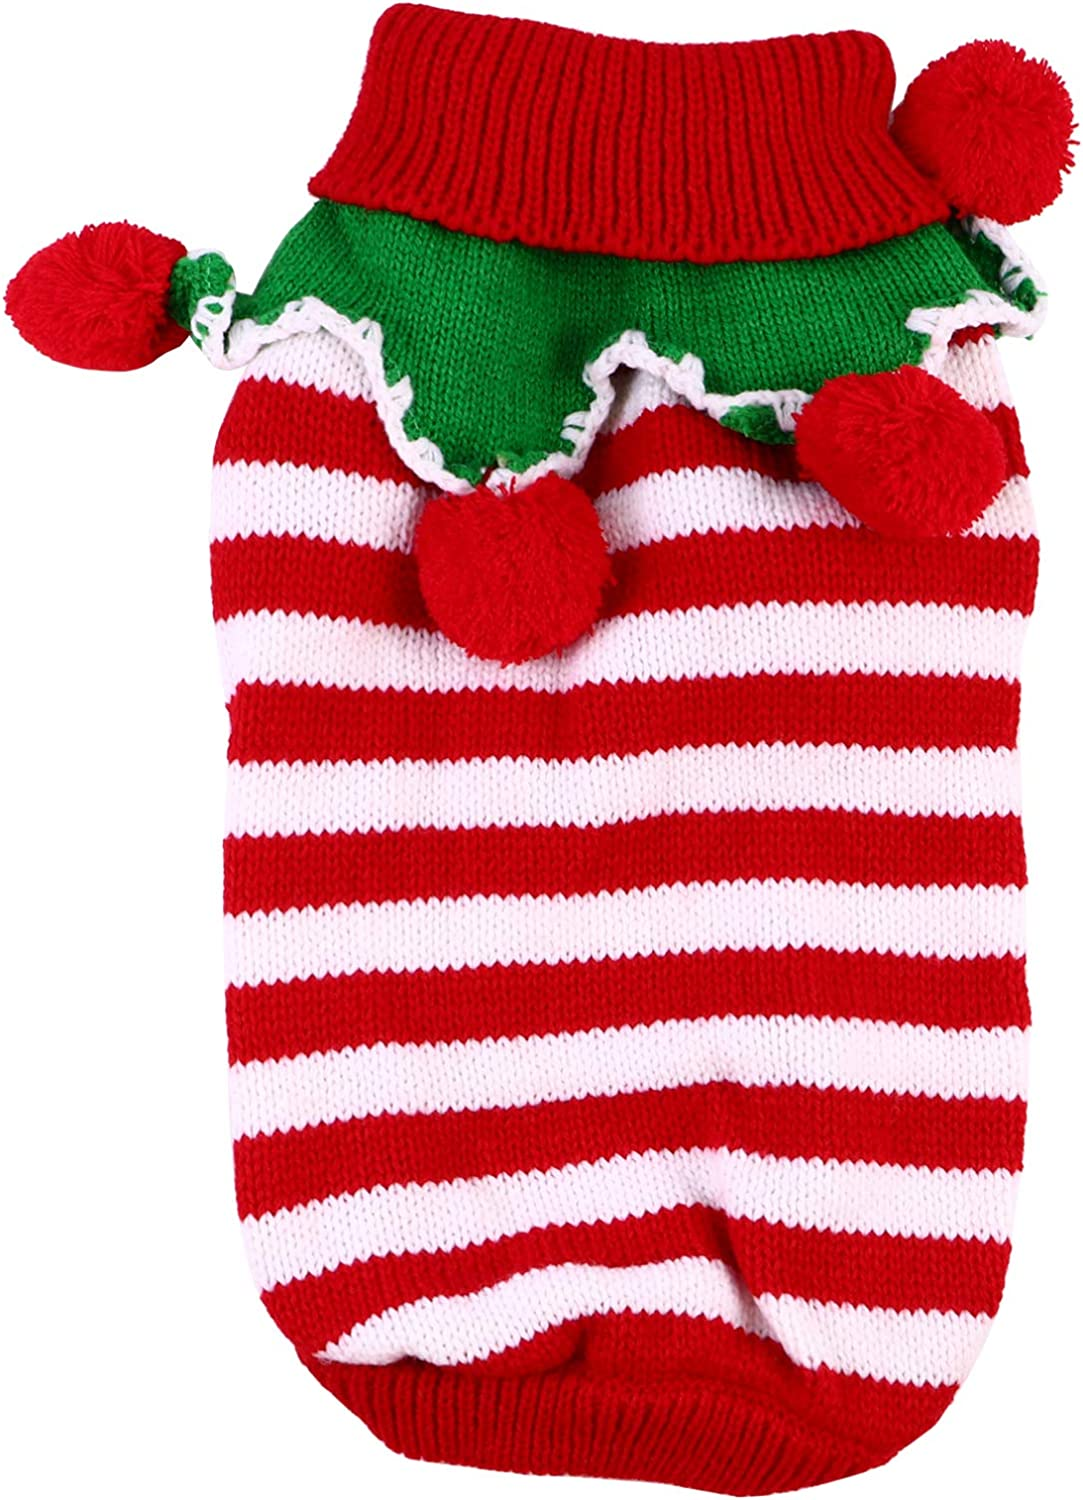 Balacoo Christmas Pet Sweater Thicken fo Bombing new work Warm Dog Winter Attention brand